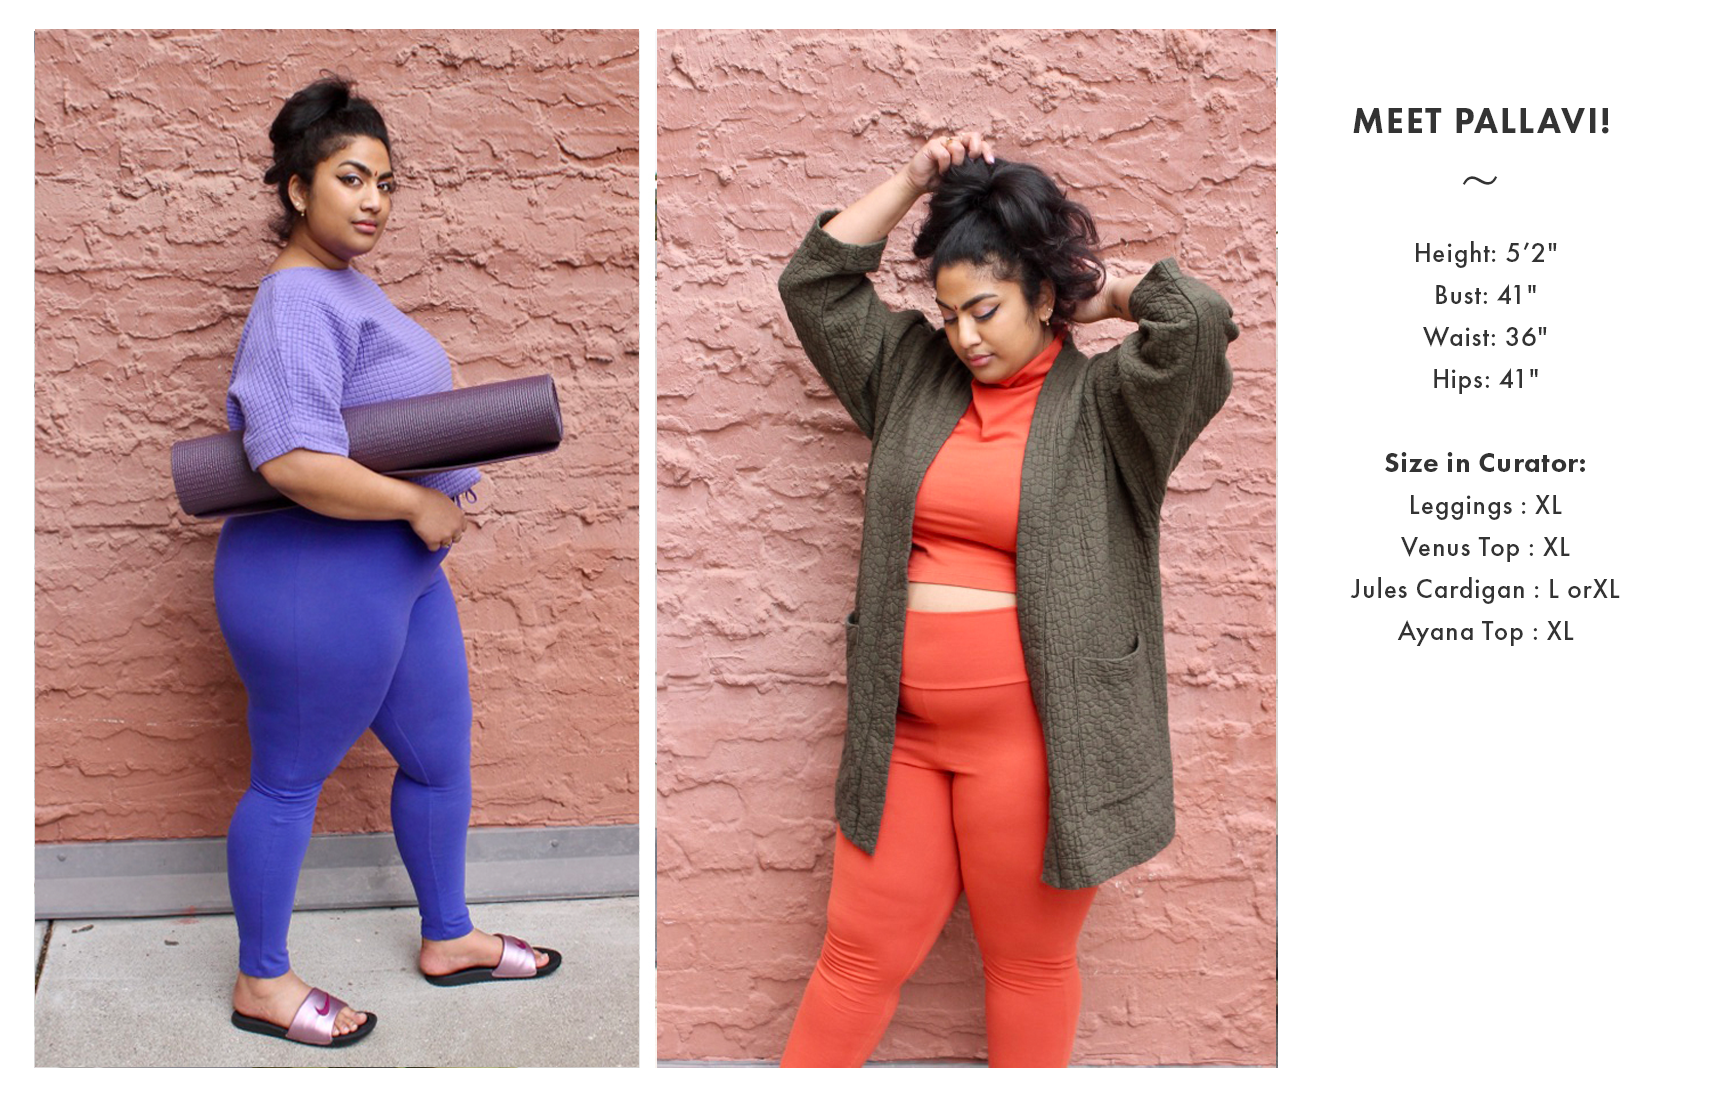 Model in clothes with sizing listed